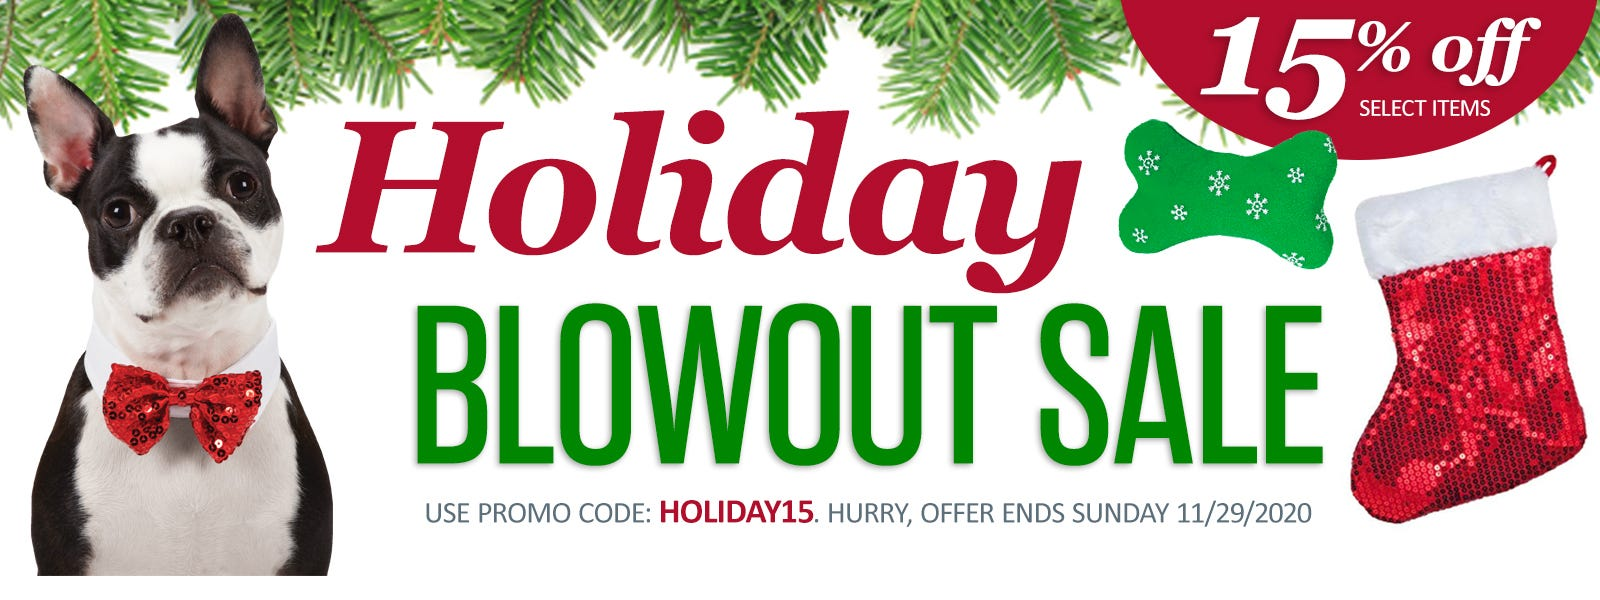 Holiday Blowout Sale!